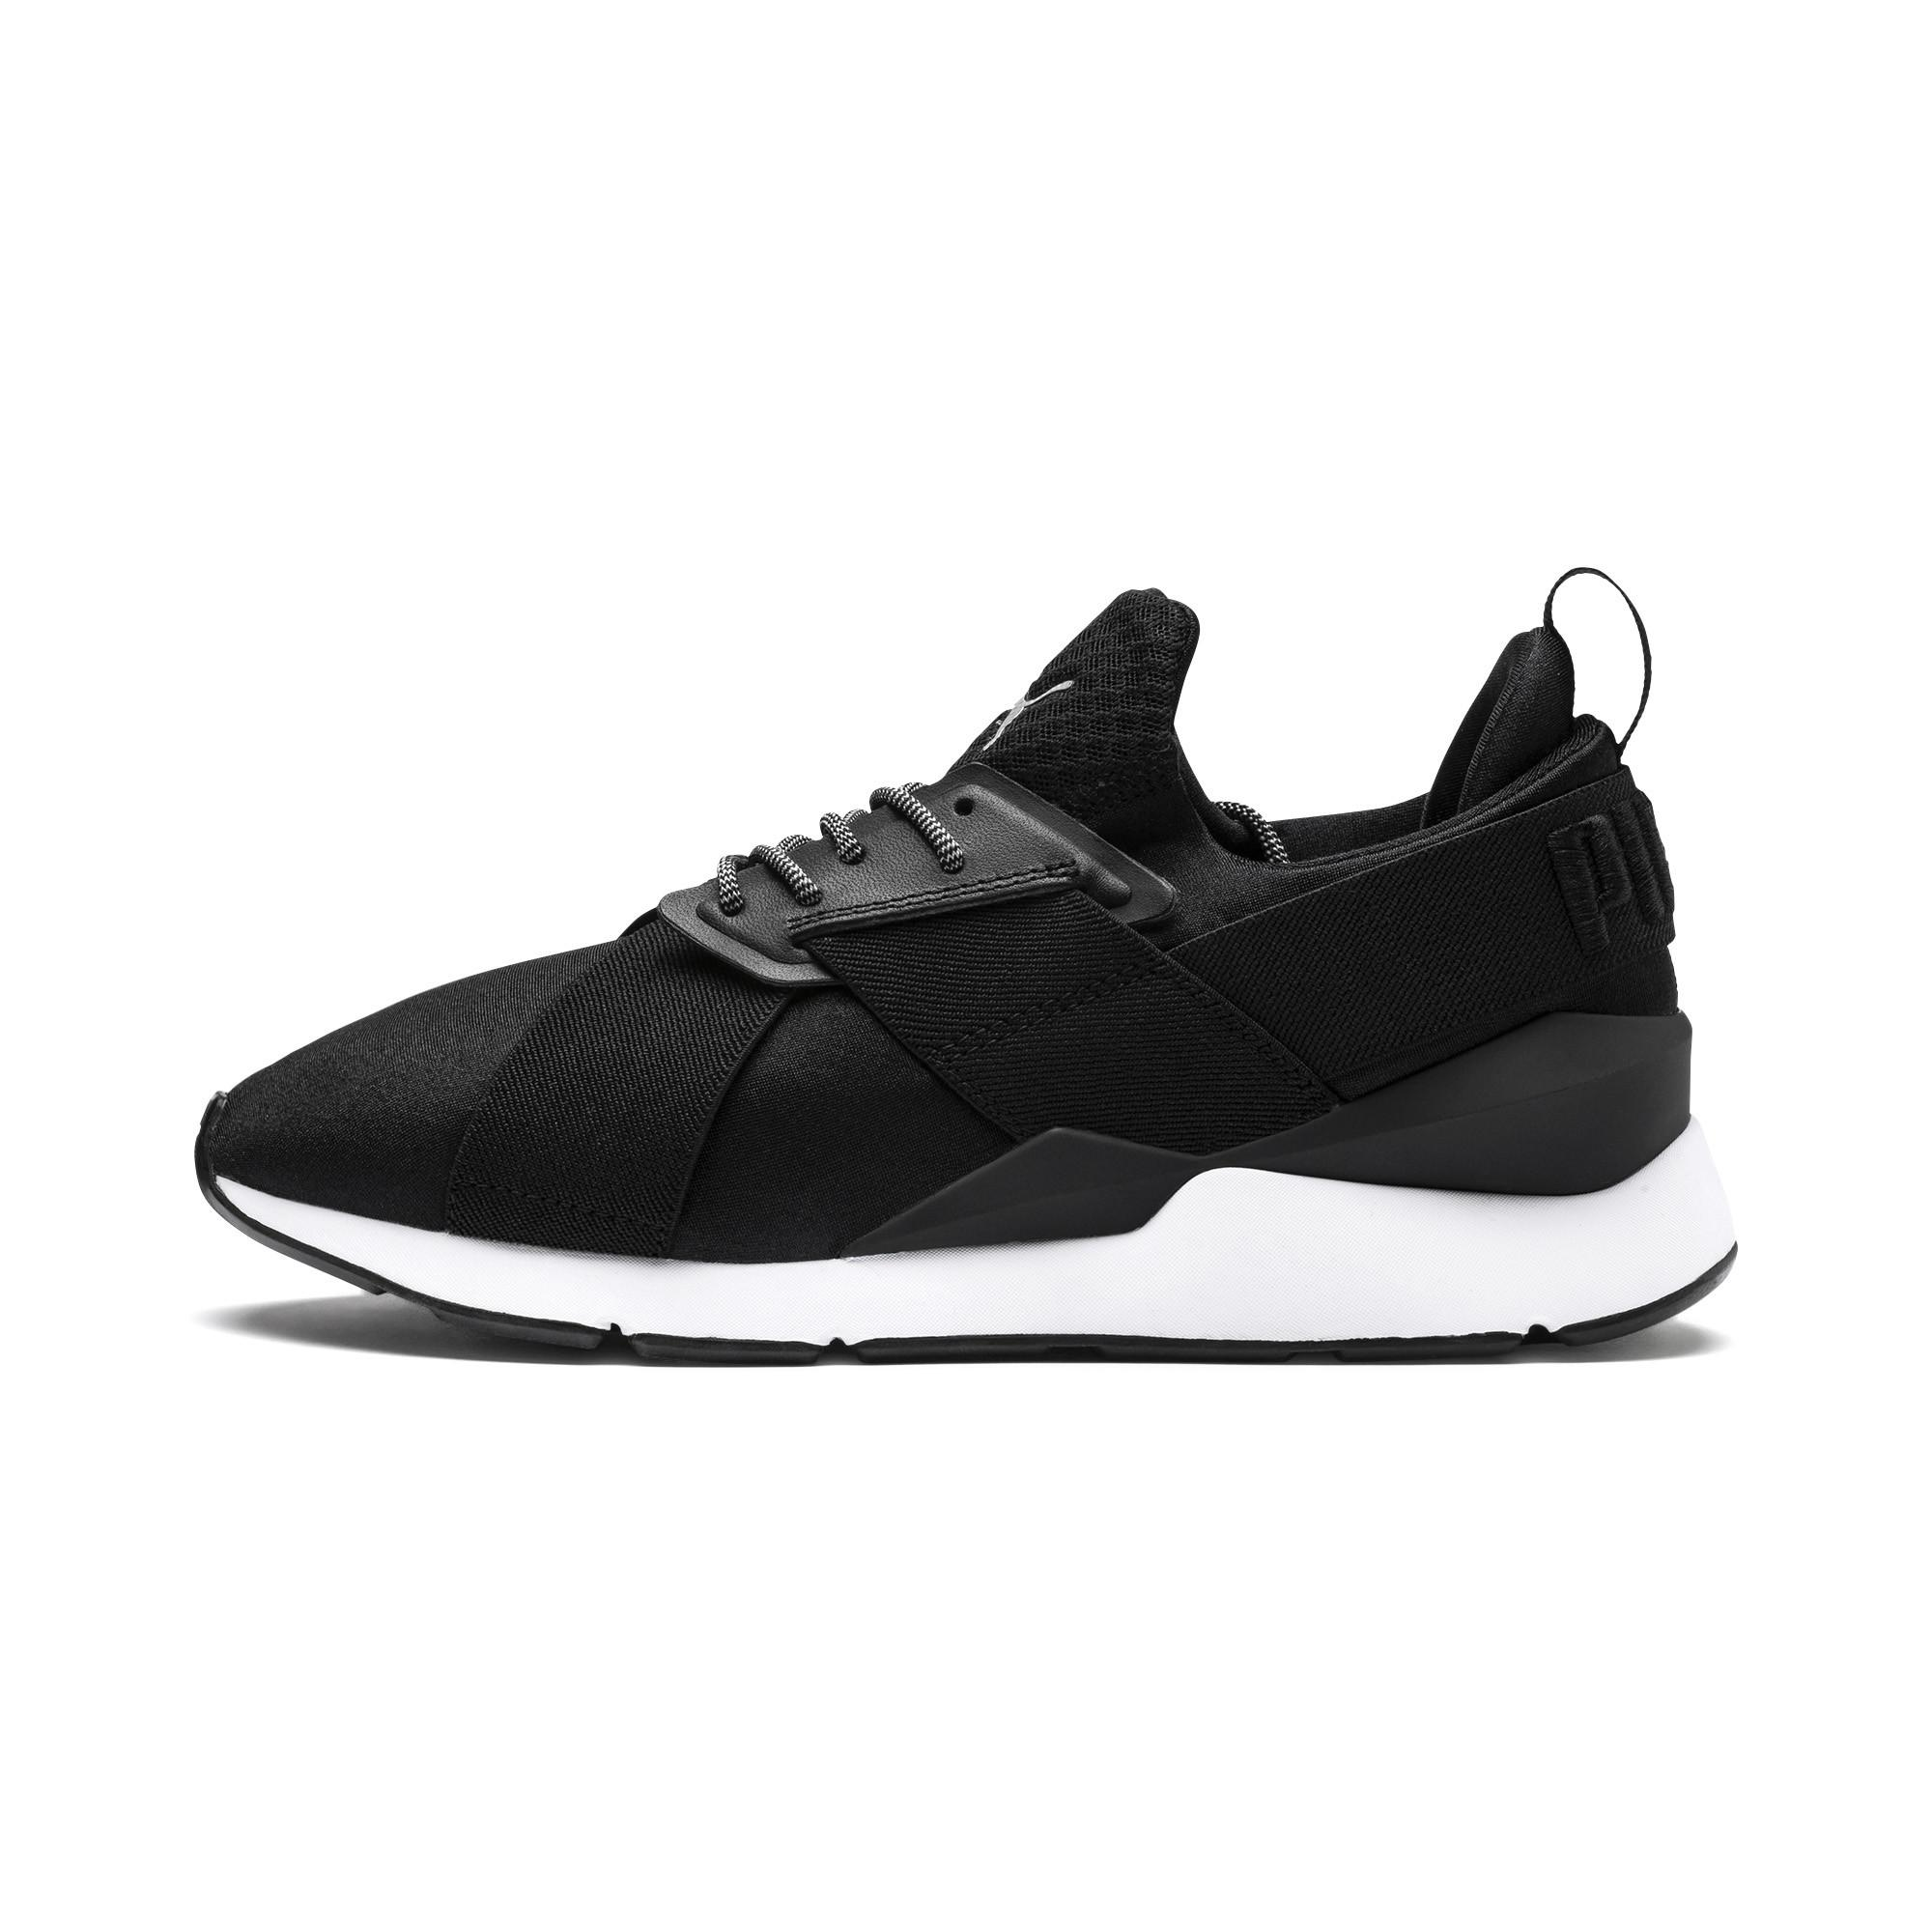 a1726c3543b9 Lyst - PUMA En Pointe Muse Satin Women s Sneakers in Black - Save 51%